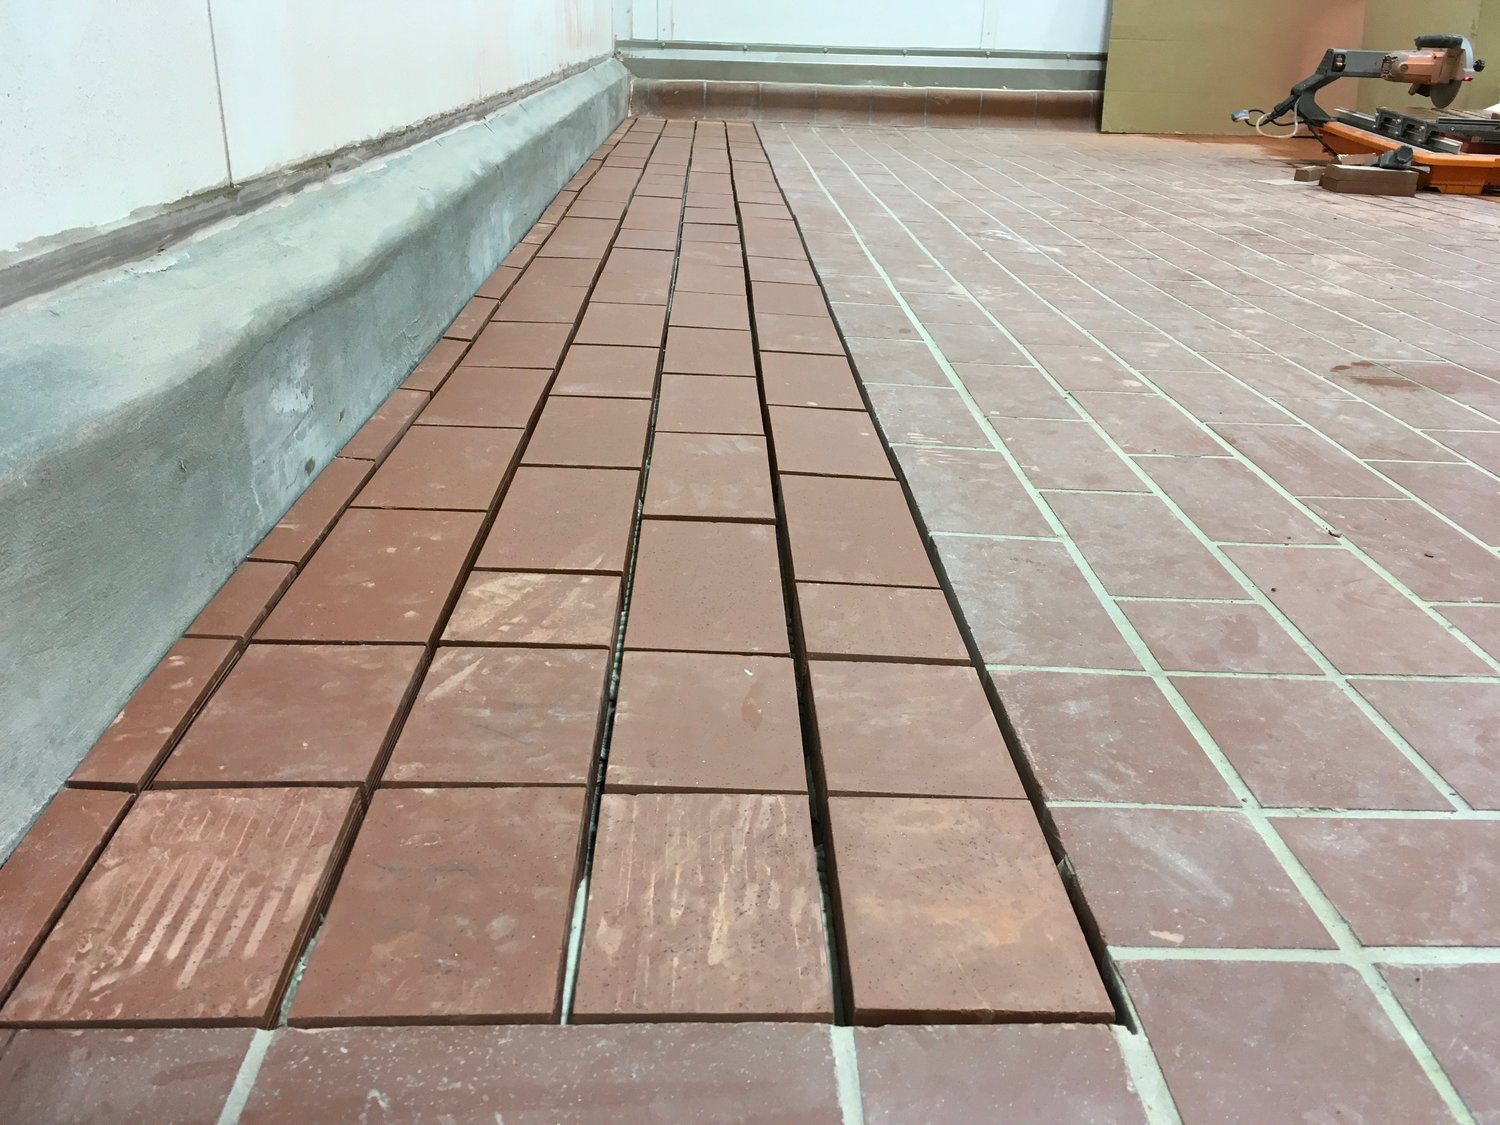 Dairy Brick Indue Industrial And Commercial Flooring Sales